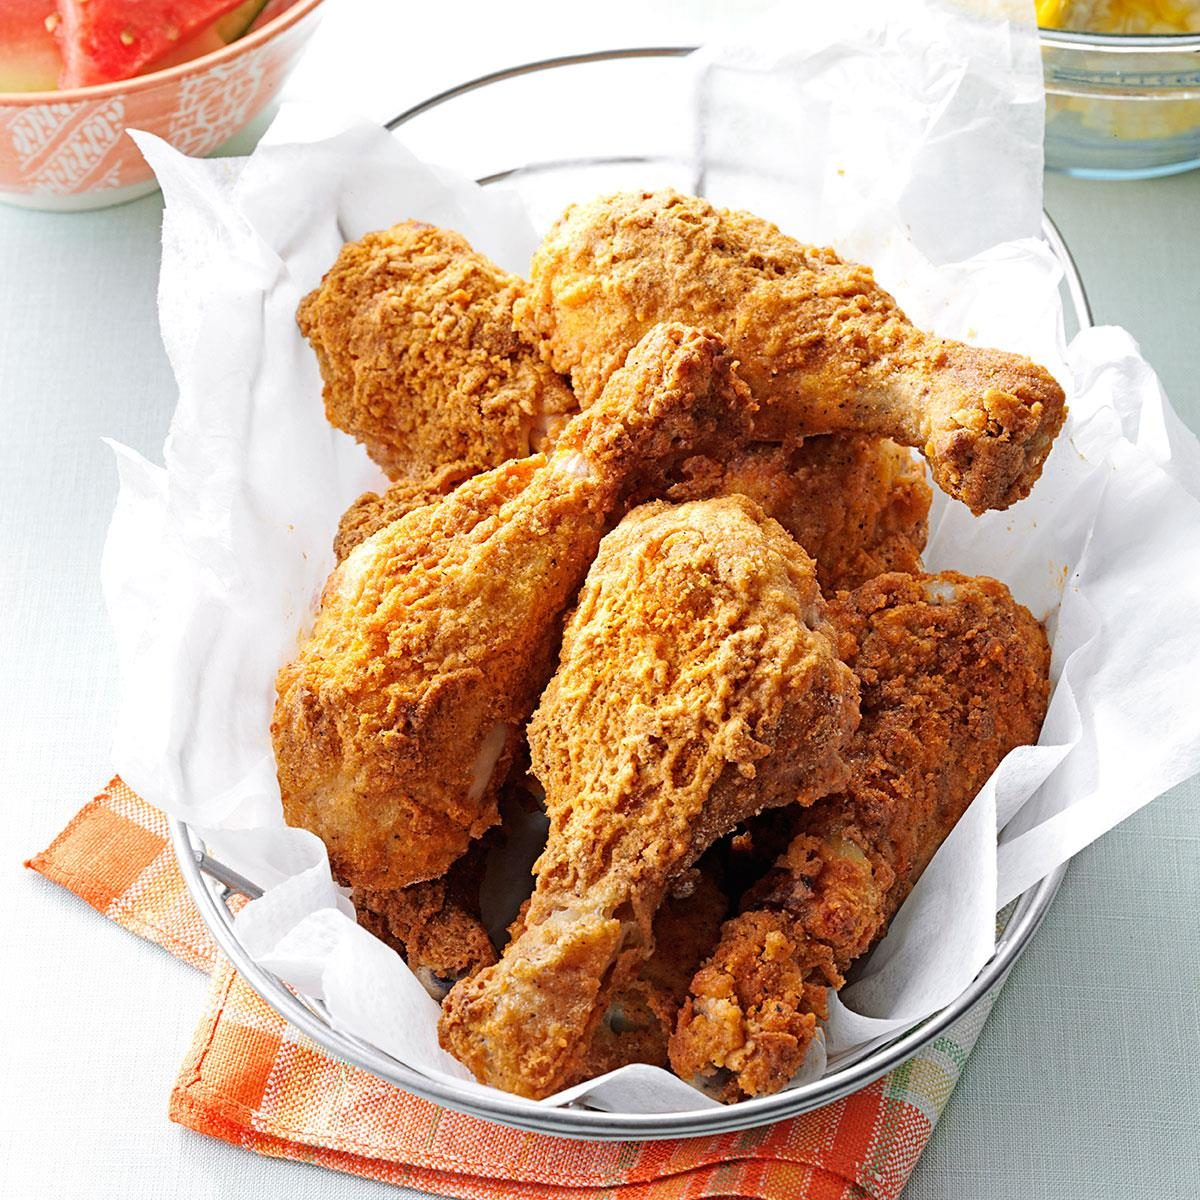 oven fried chicken drumsticks recipe taste of home. Black Bedroom Furniture Sets. Home Design Ideas